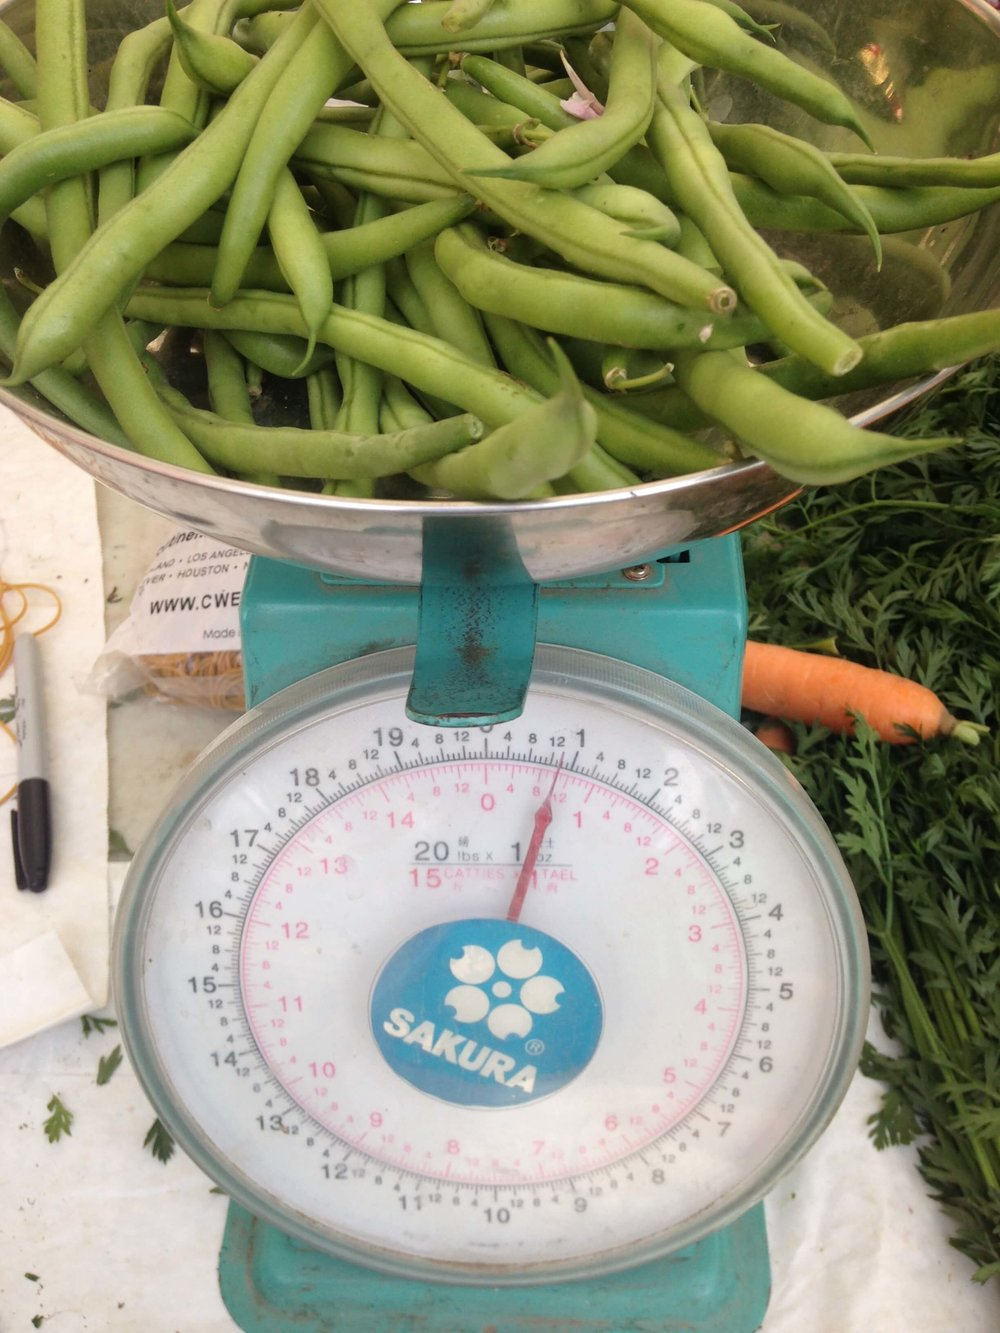 Sugar Snap Peas on Scale. Weighing out foods can be helpful following weight loss surgery.